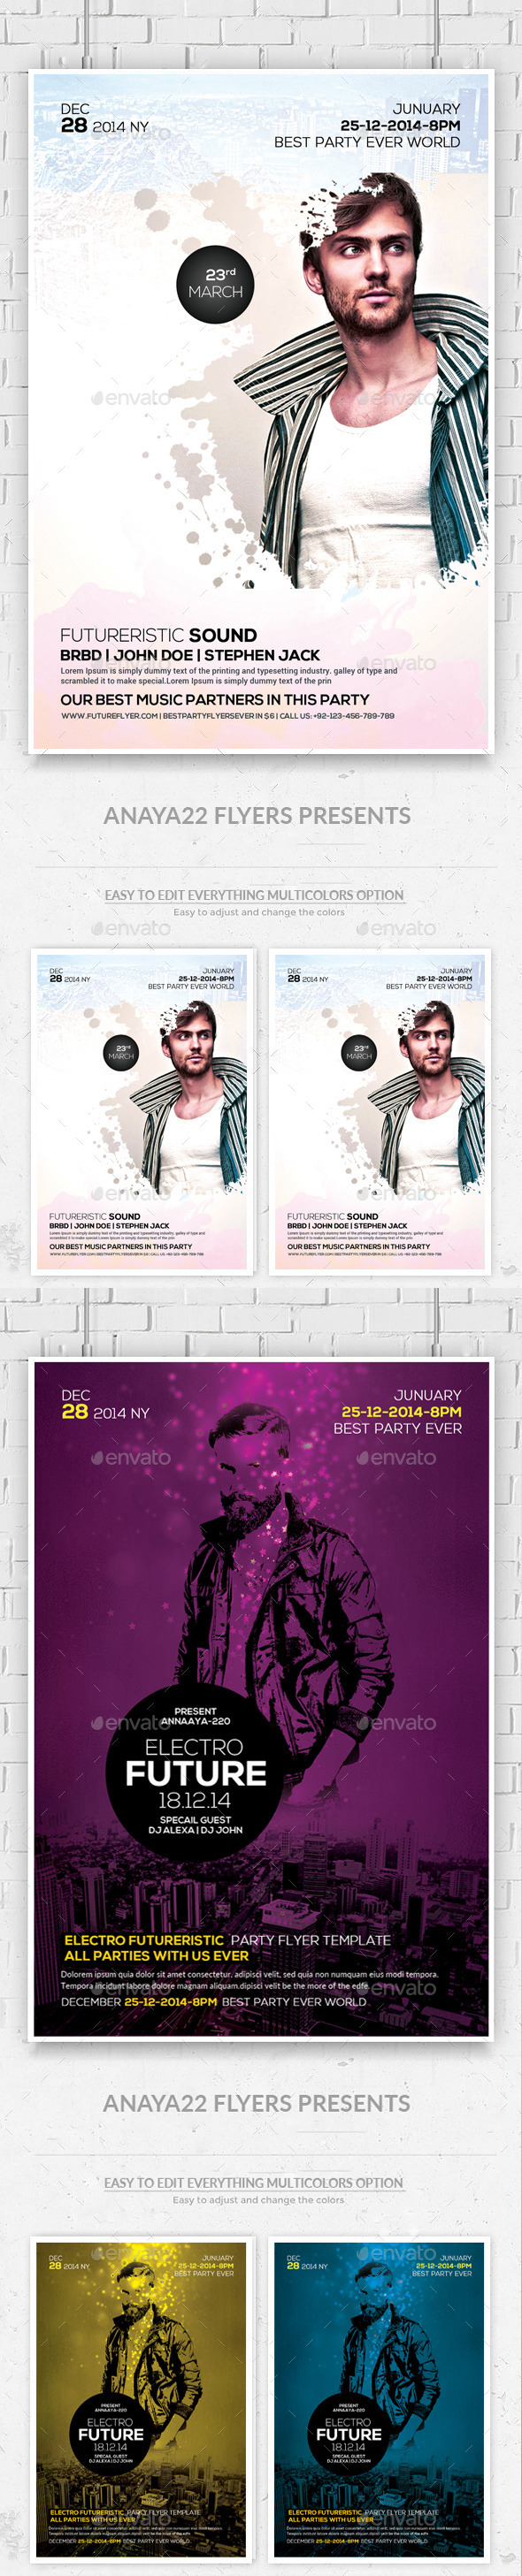 Electro Concert Dj Flyers Bundle - Clubs & Parties Events